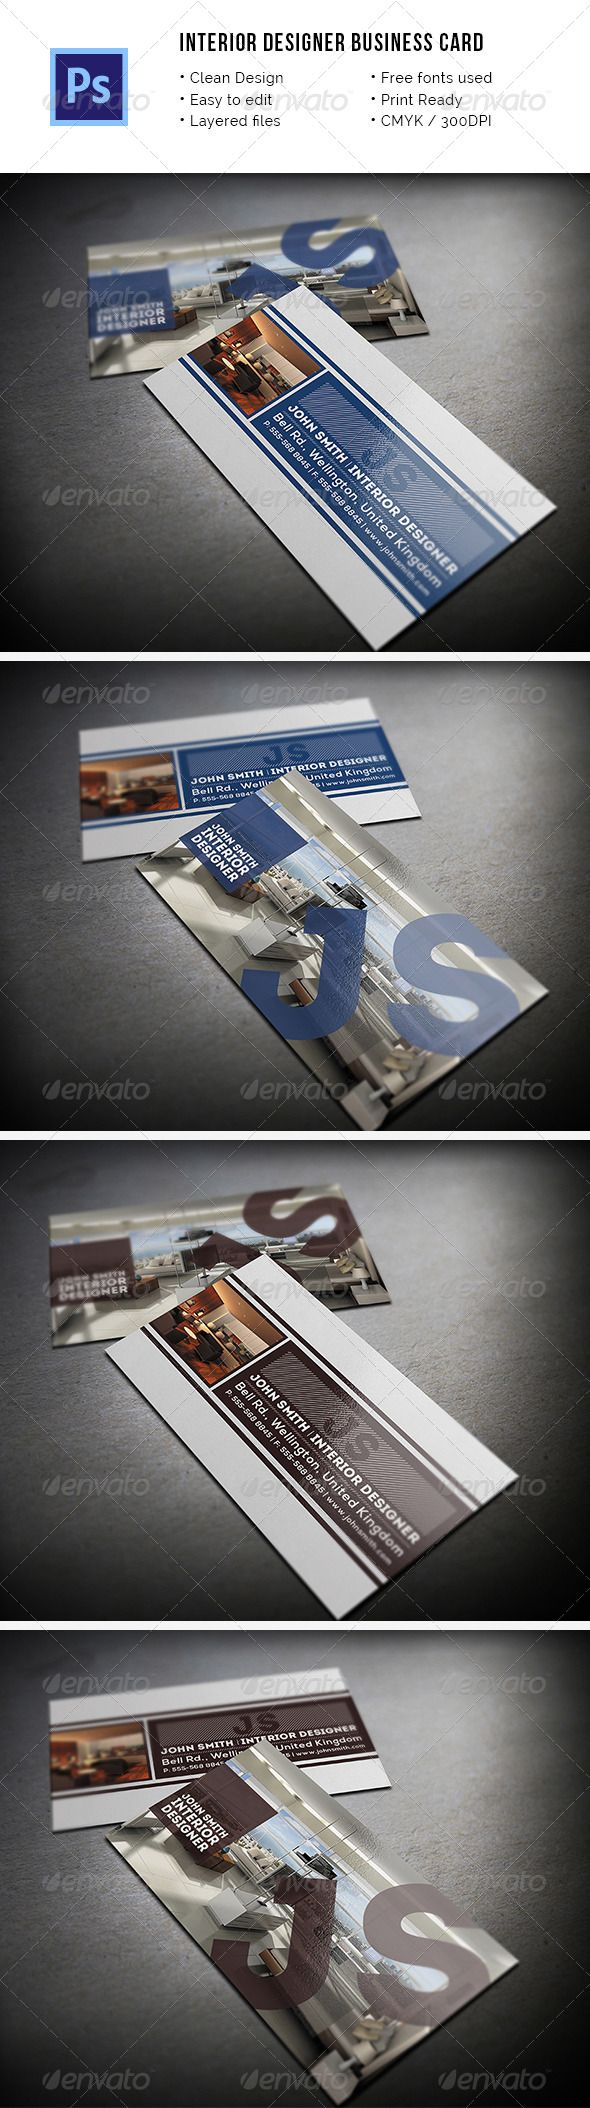 35 best Graphic Design-Business Card images on Pinterest | Business ...